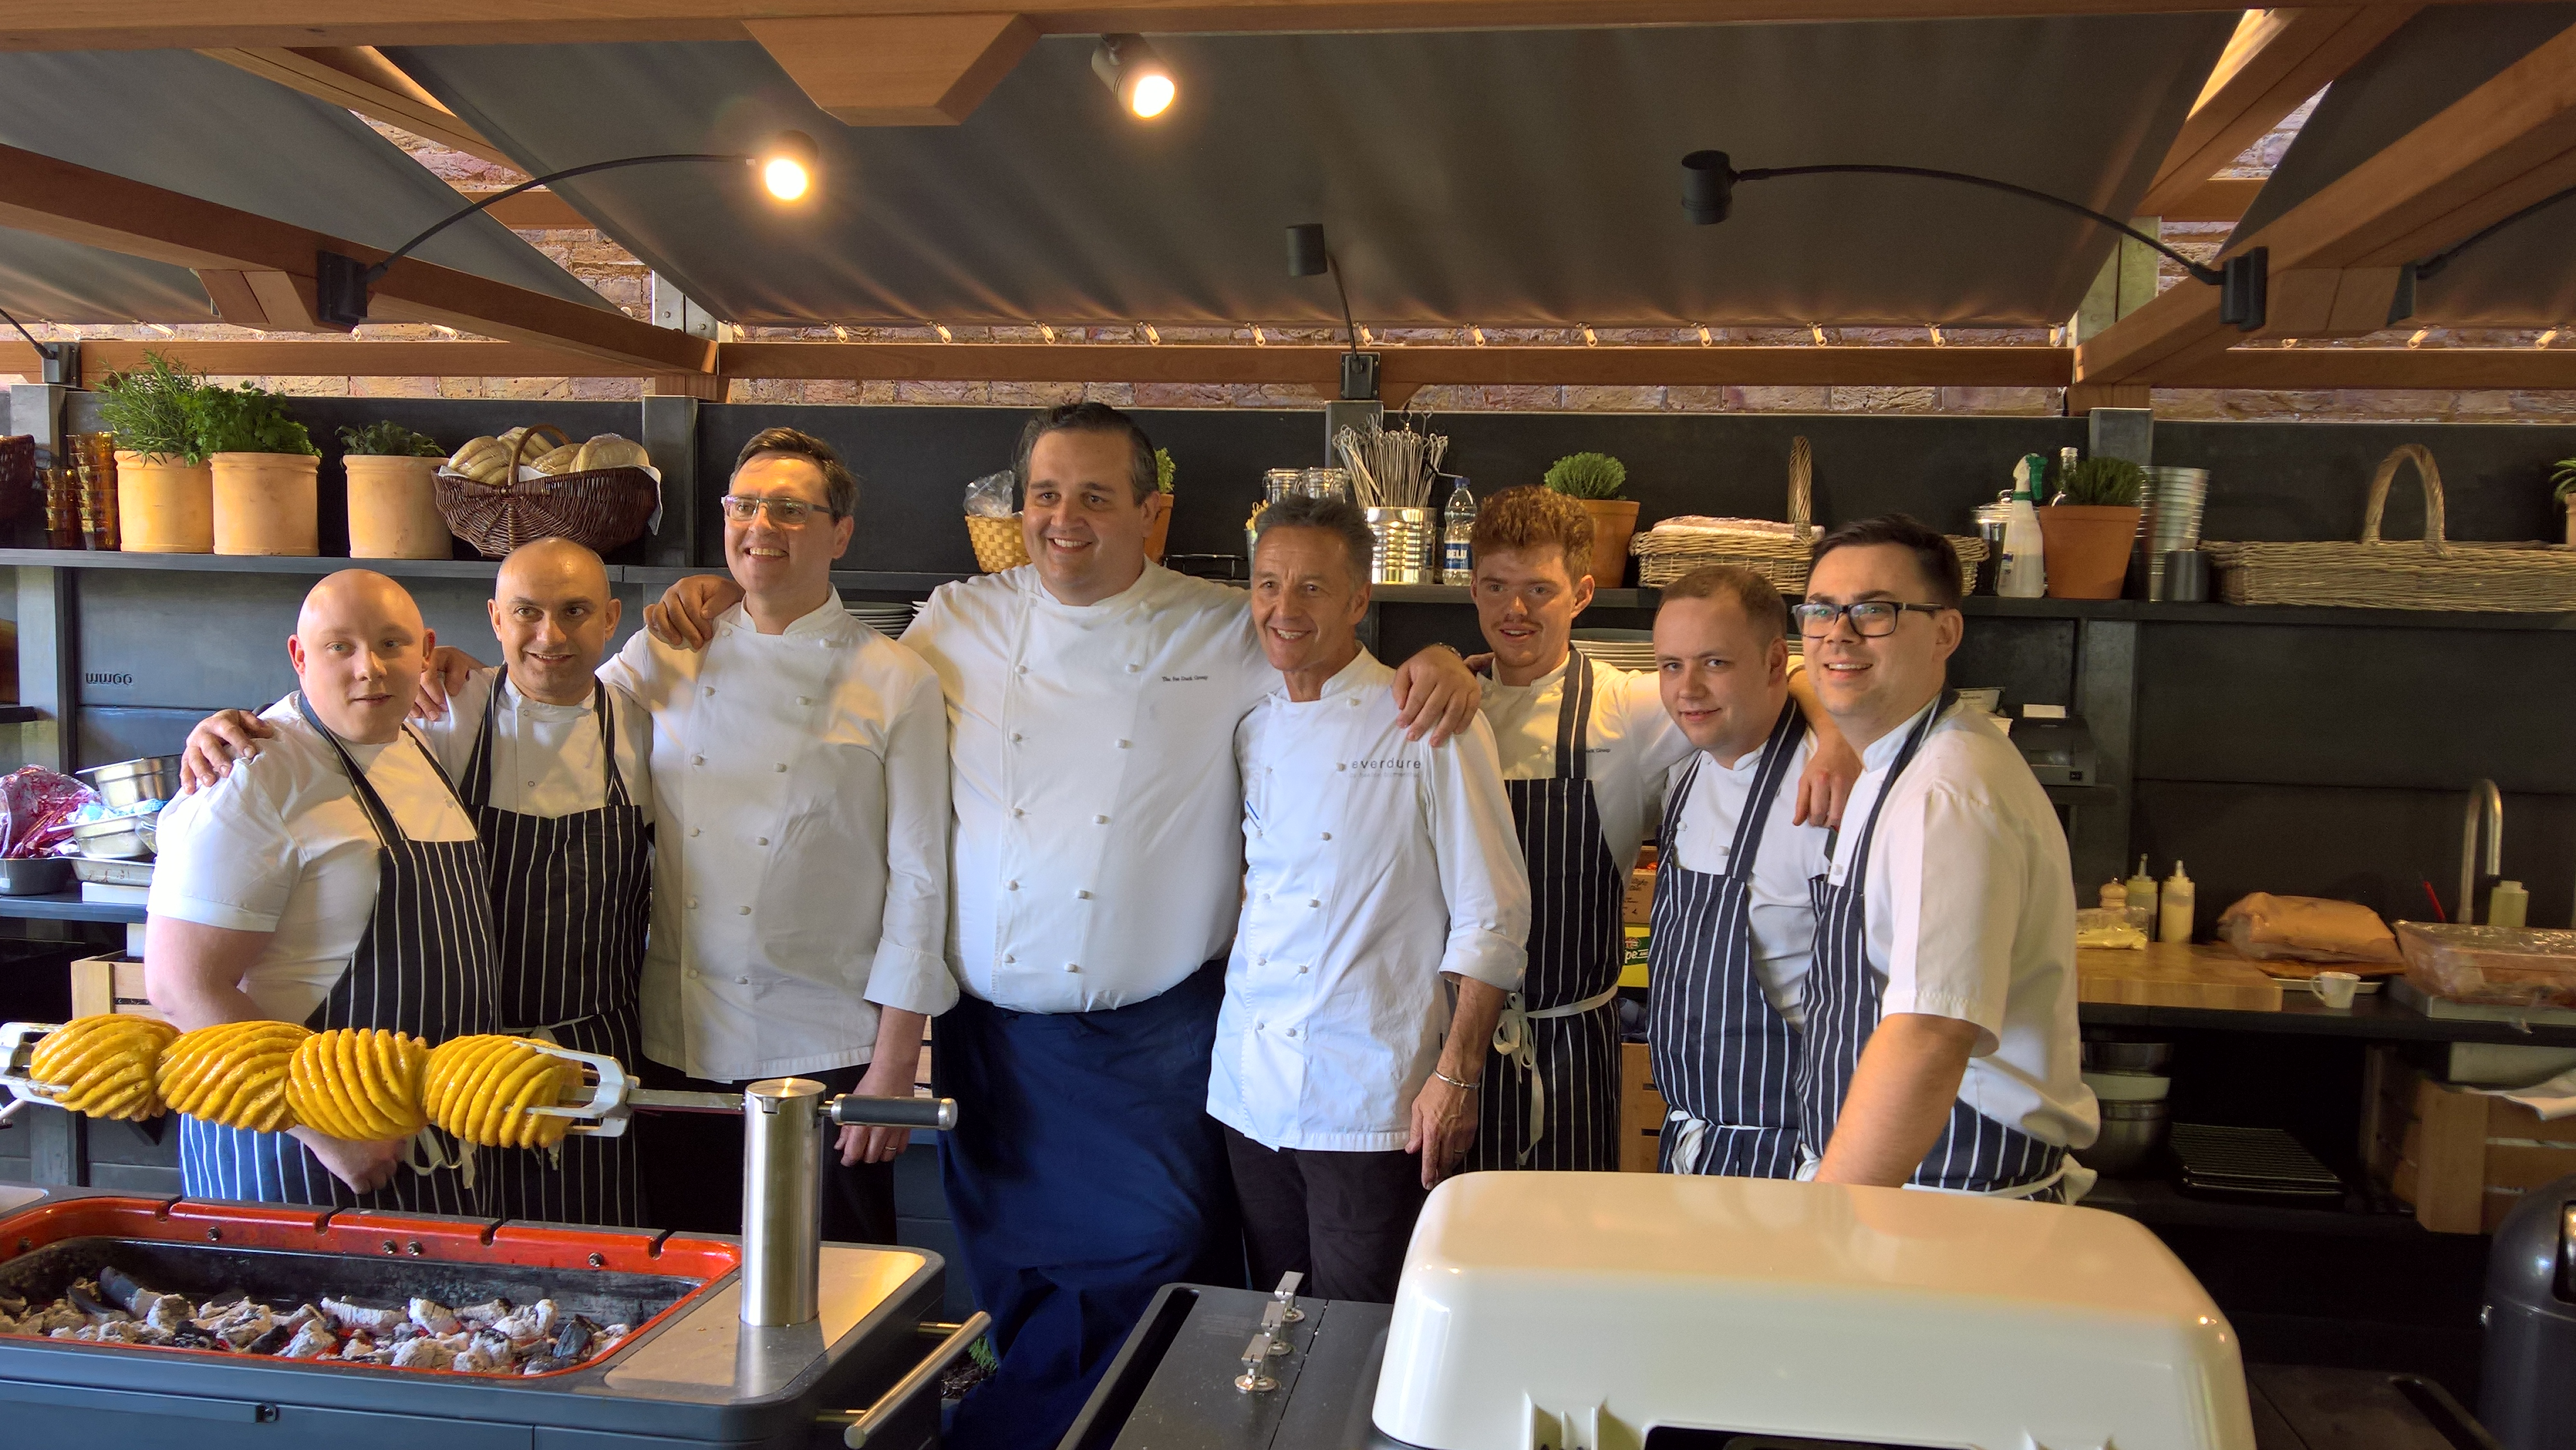 Everdure by Heston Blumenthal Launches in the UK